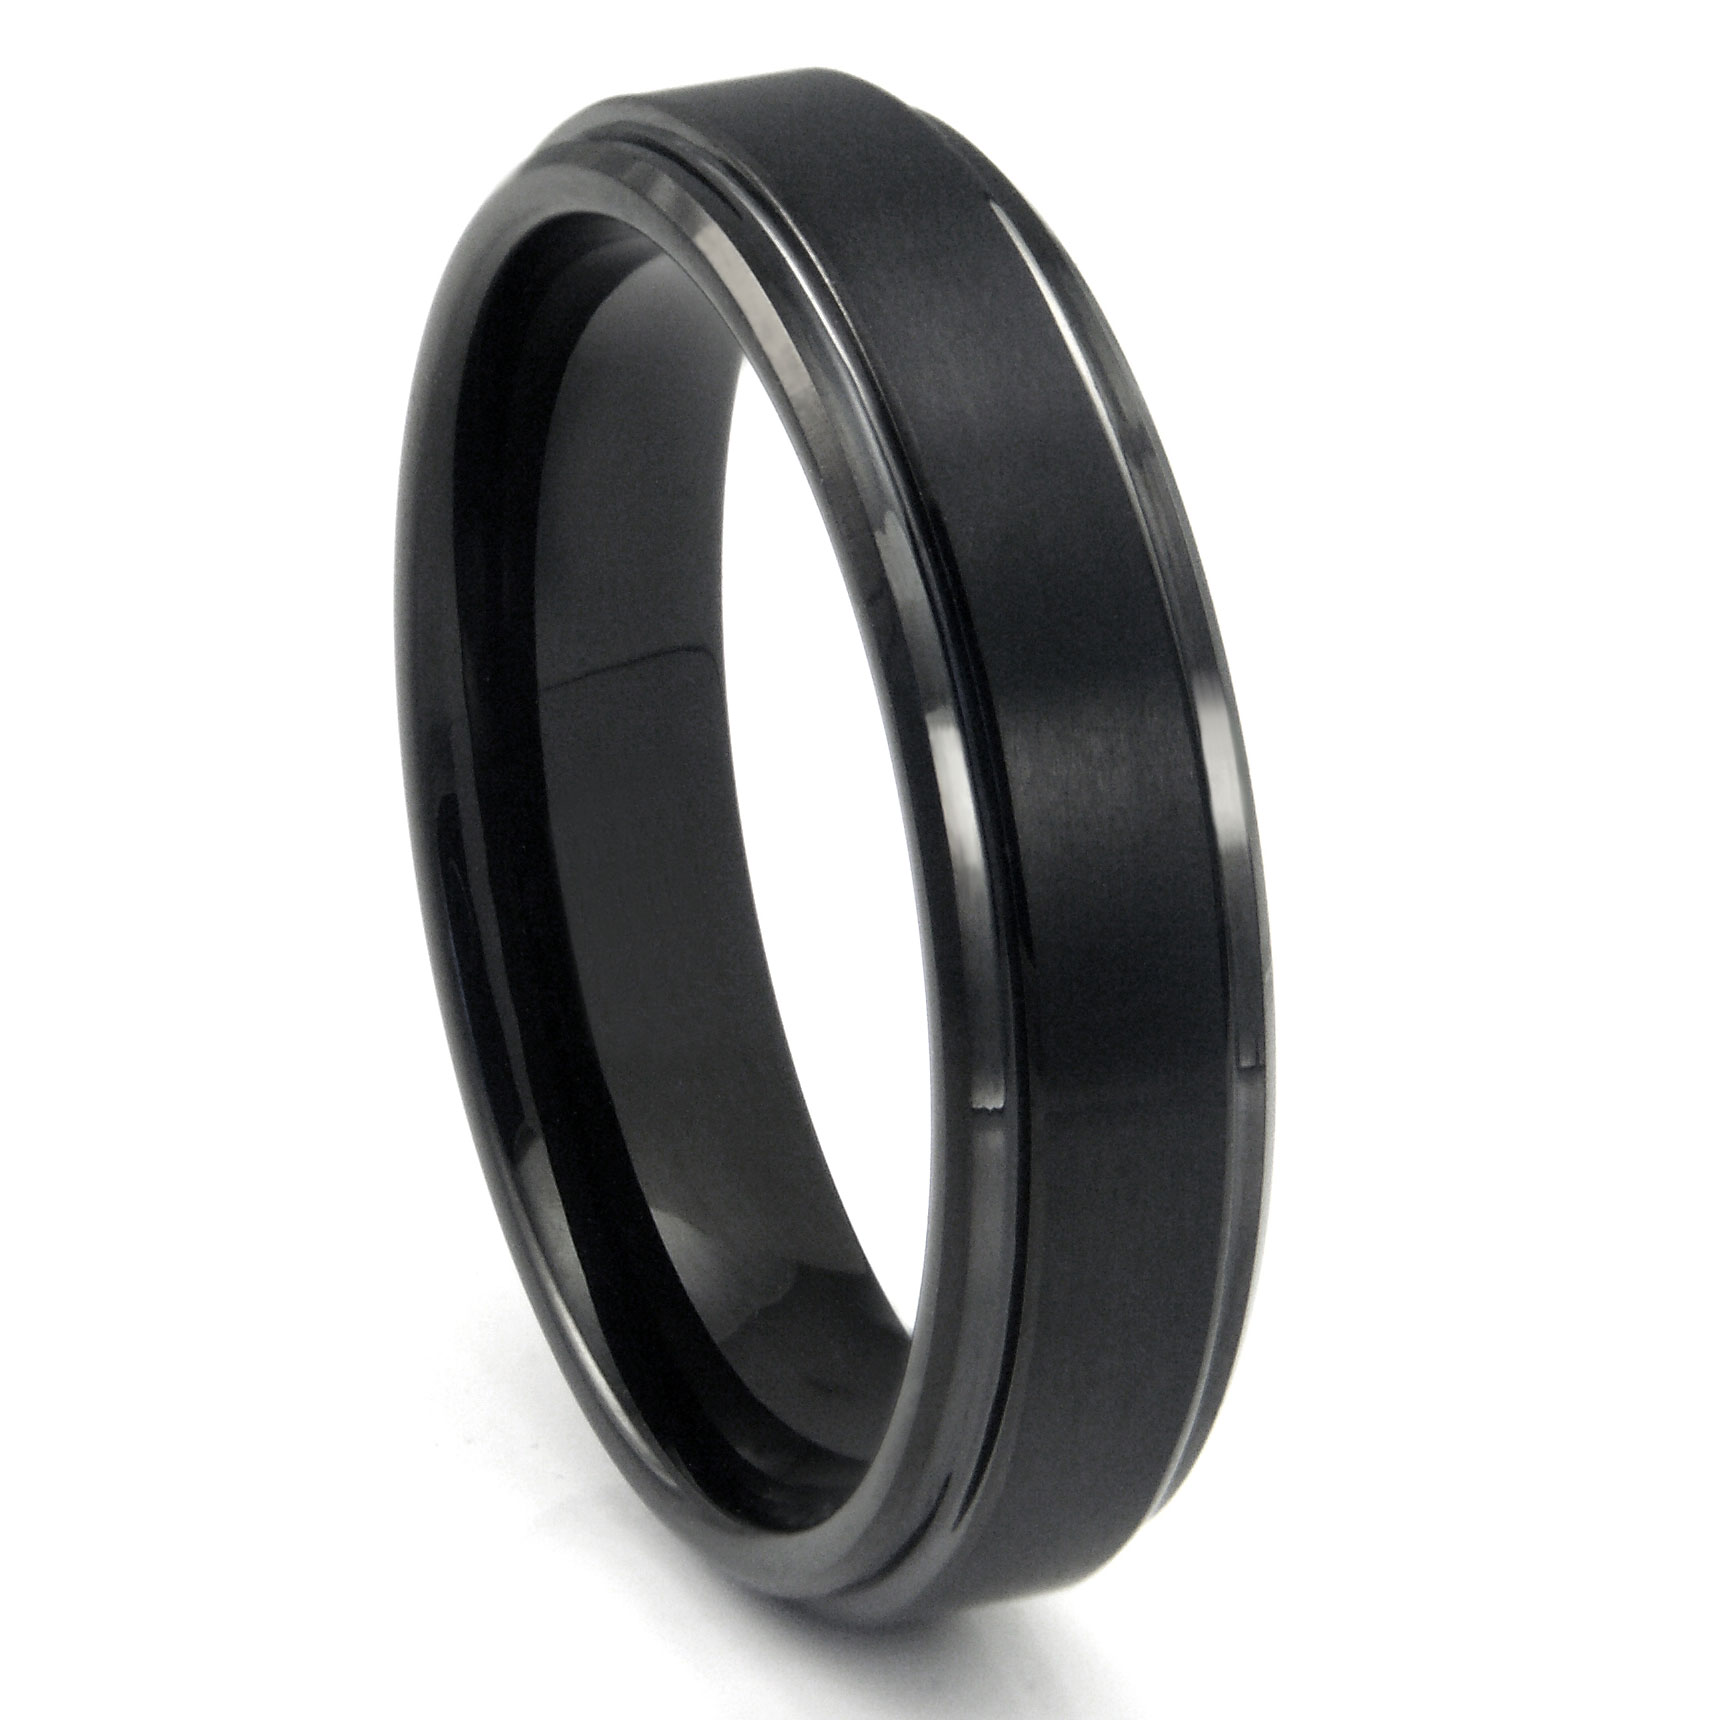 rings mens titanium jewelers inspirational pictures s of ring men new black band wedding cavalier ideas concept